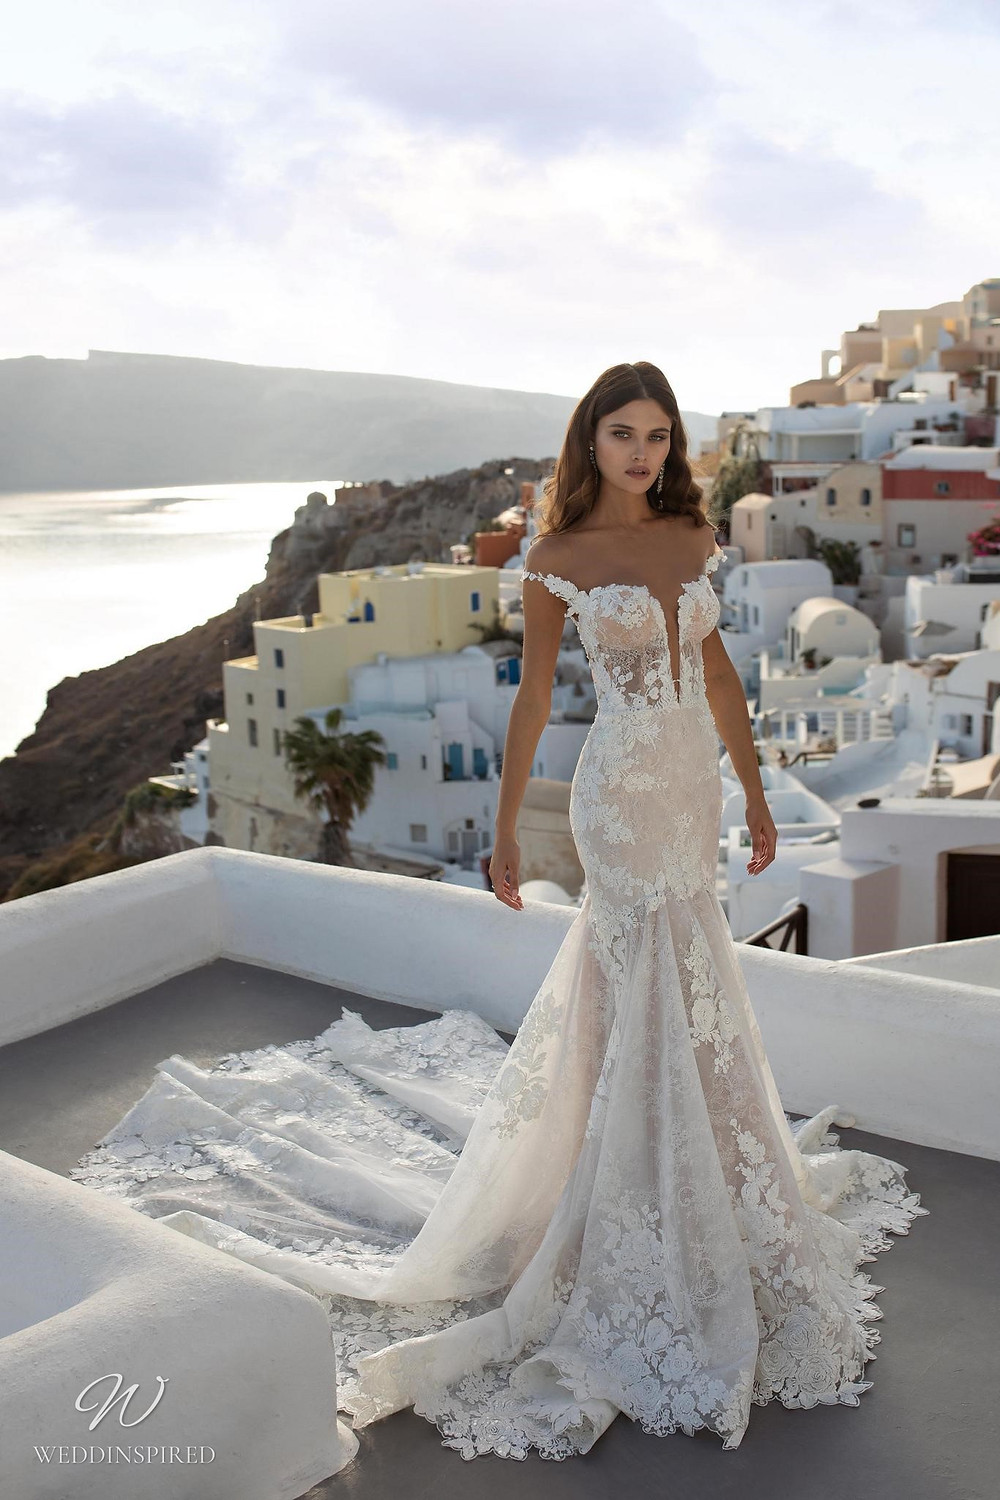 A Ricca Sposa off the shoulder lace mermaid wedding dress with a sweetheart neckline and a train